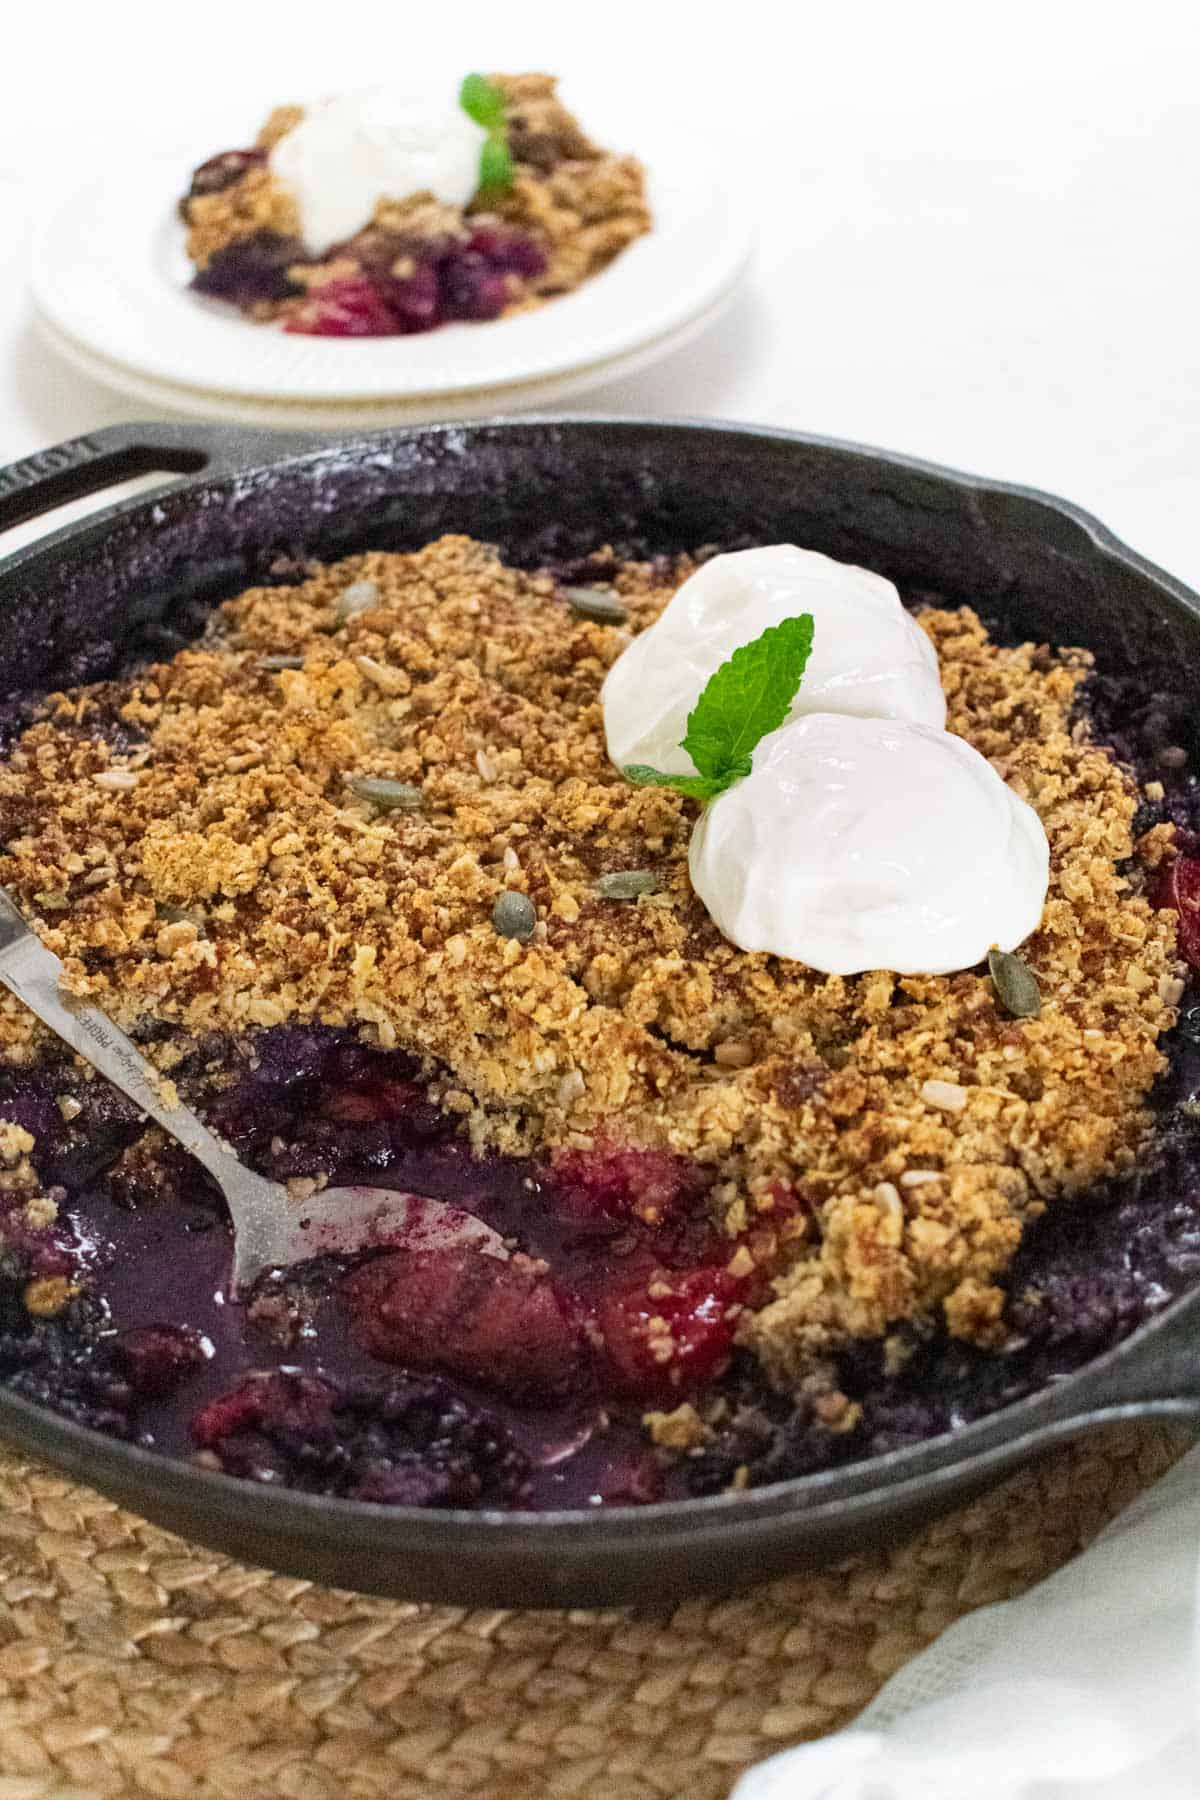 Skillet of plum berry crisp and a portion dished out on white plate